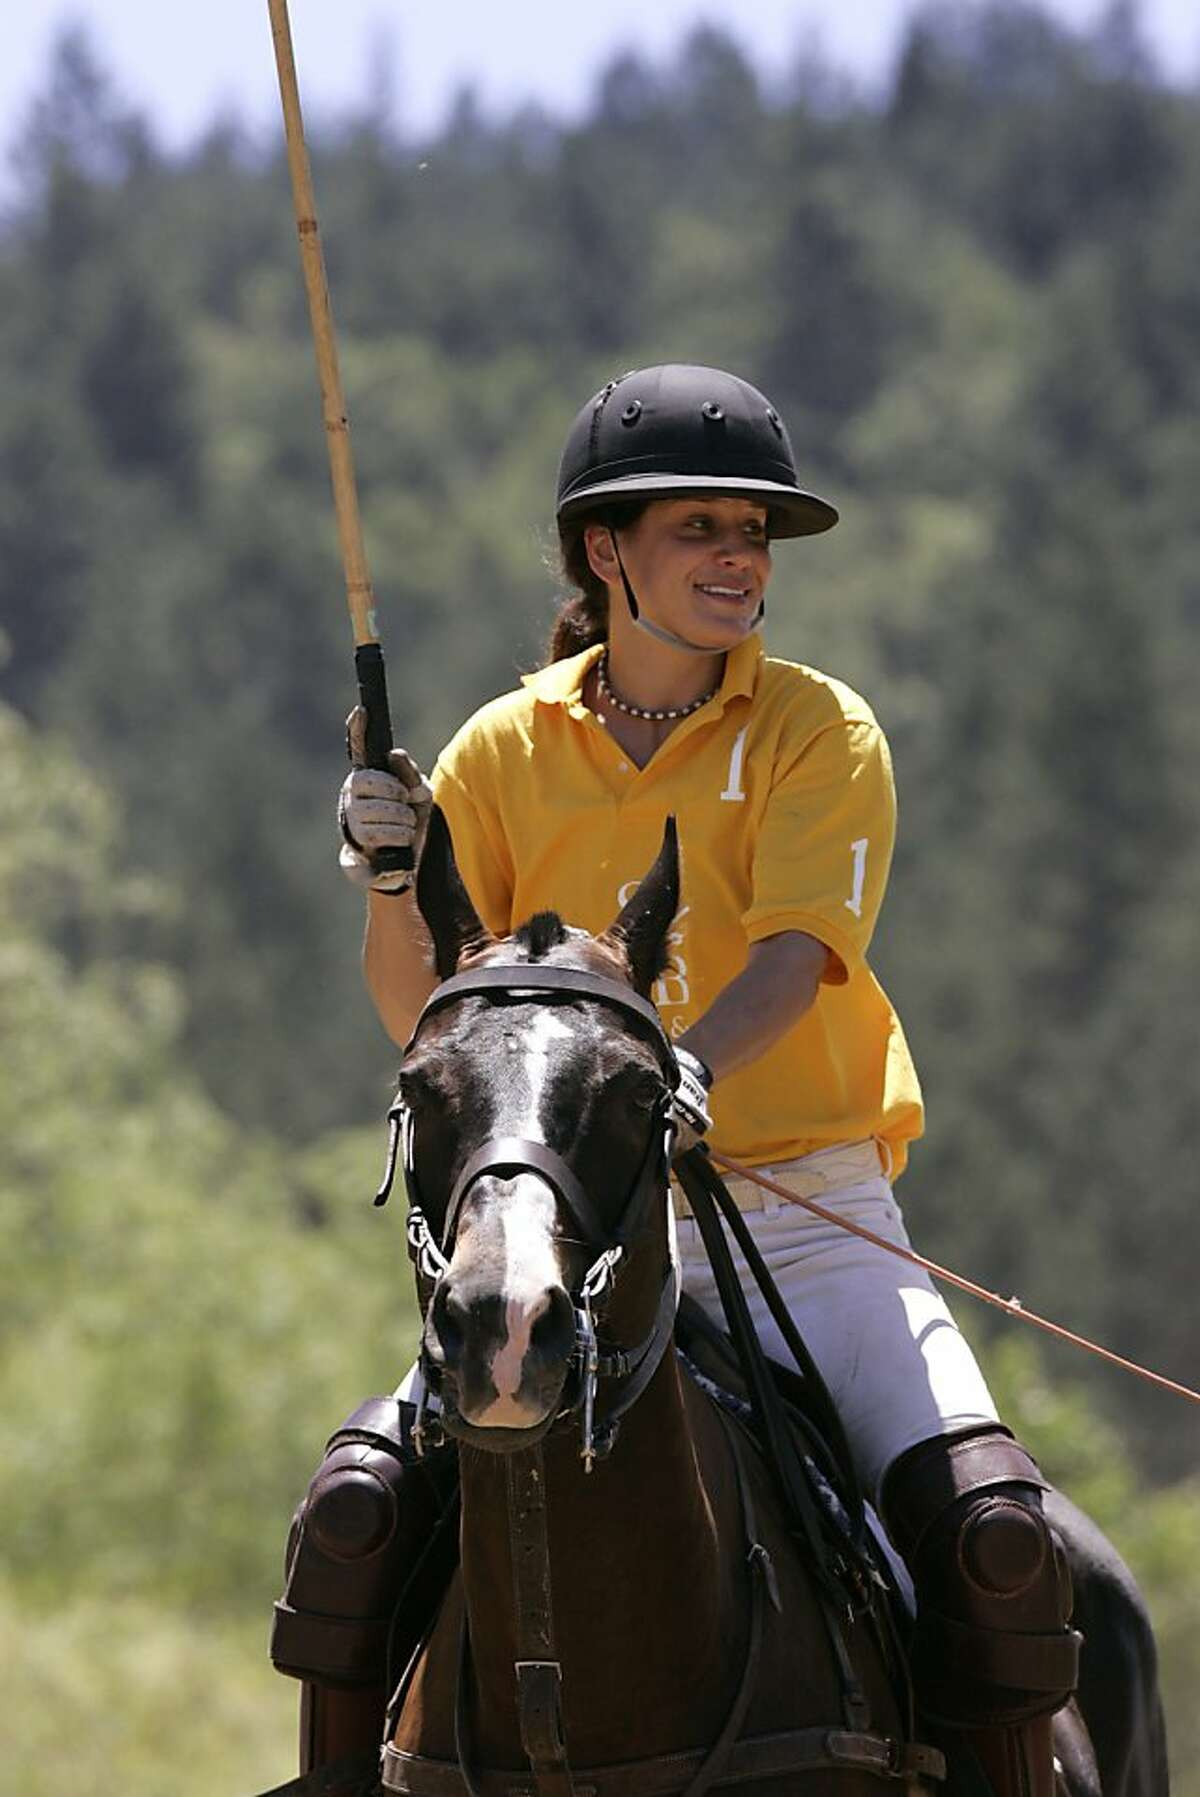 Elizabeth Goodwin Welborn, creative director of Stick & Ball, and her horse, Buford, at Wine Country Polo Club in Santa Rosa.